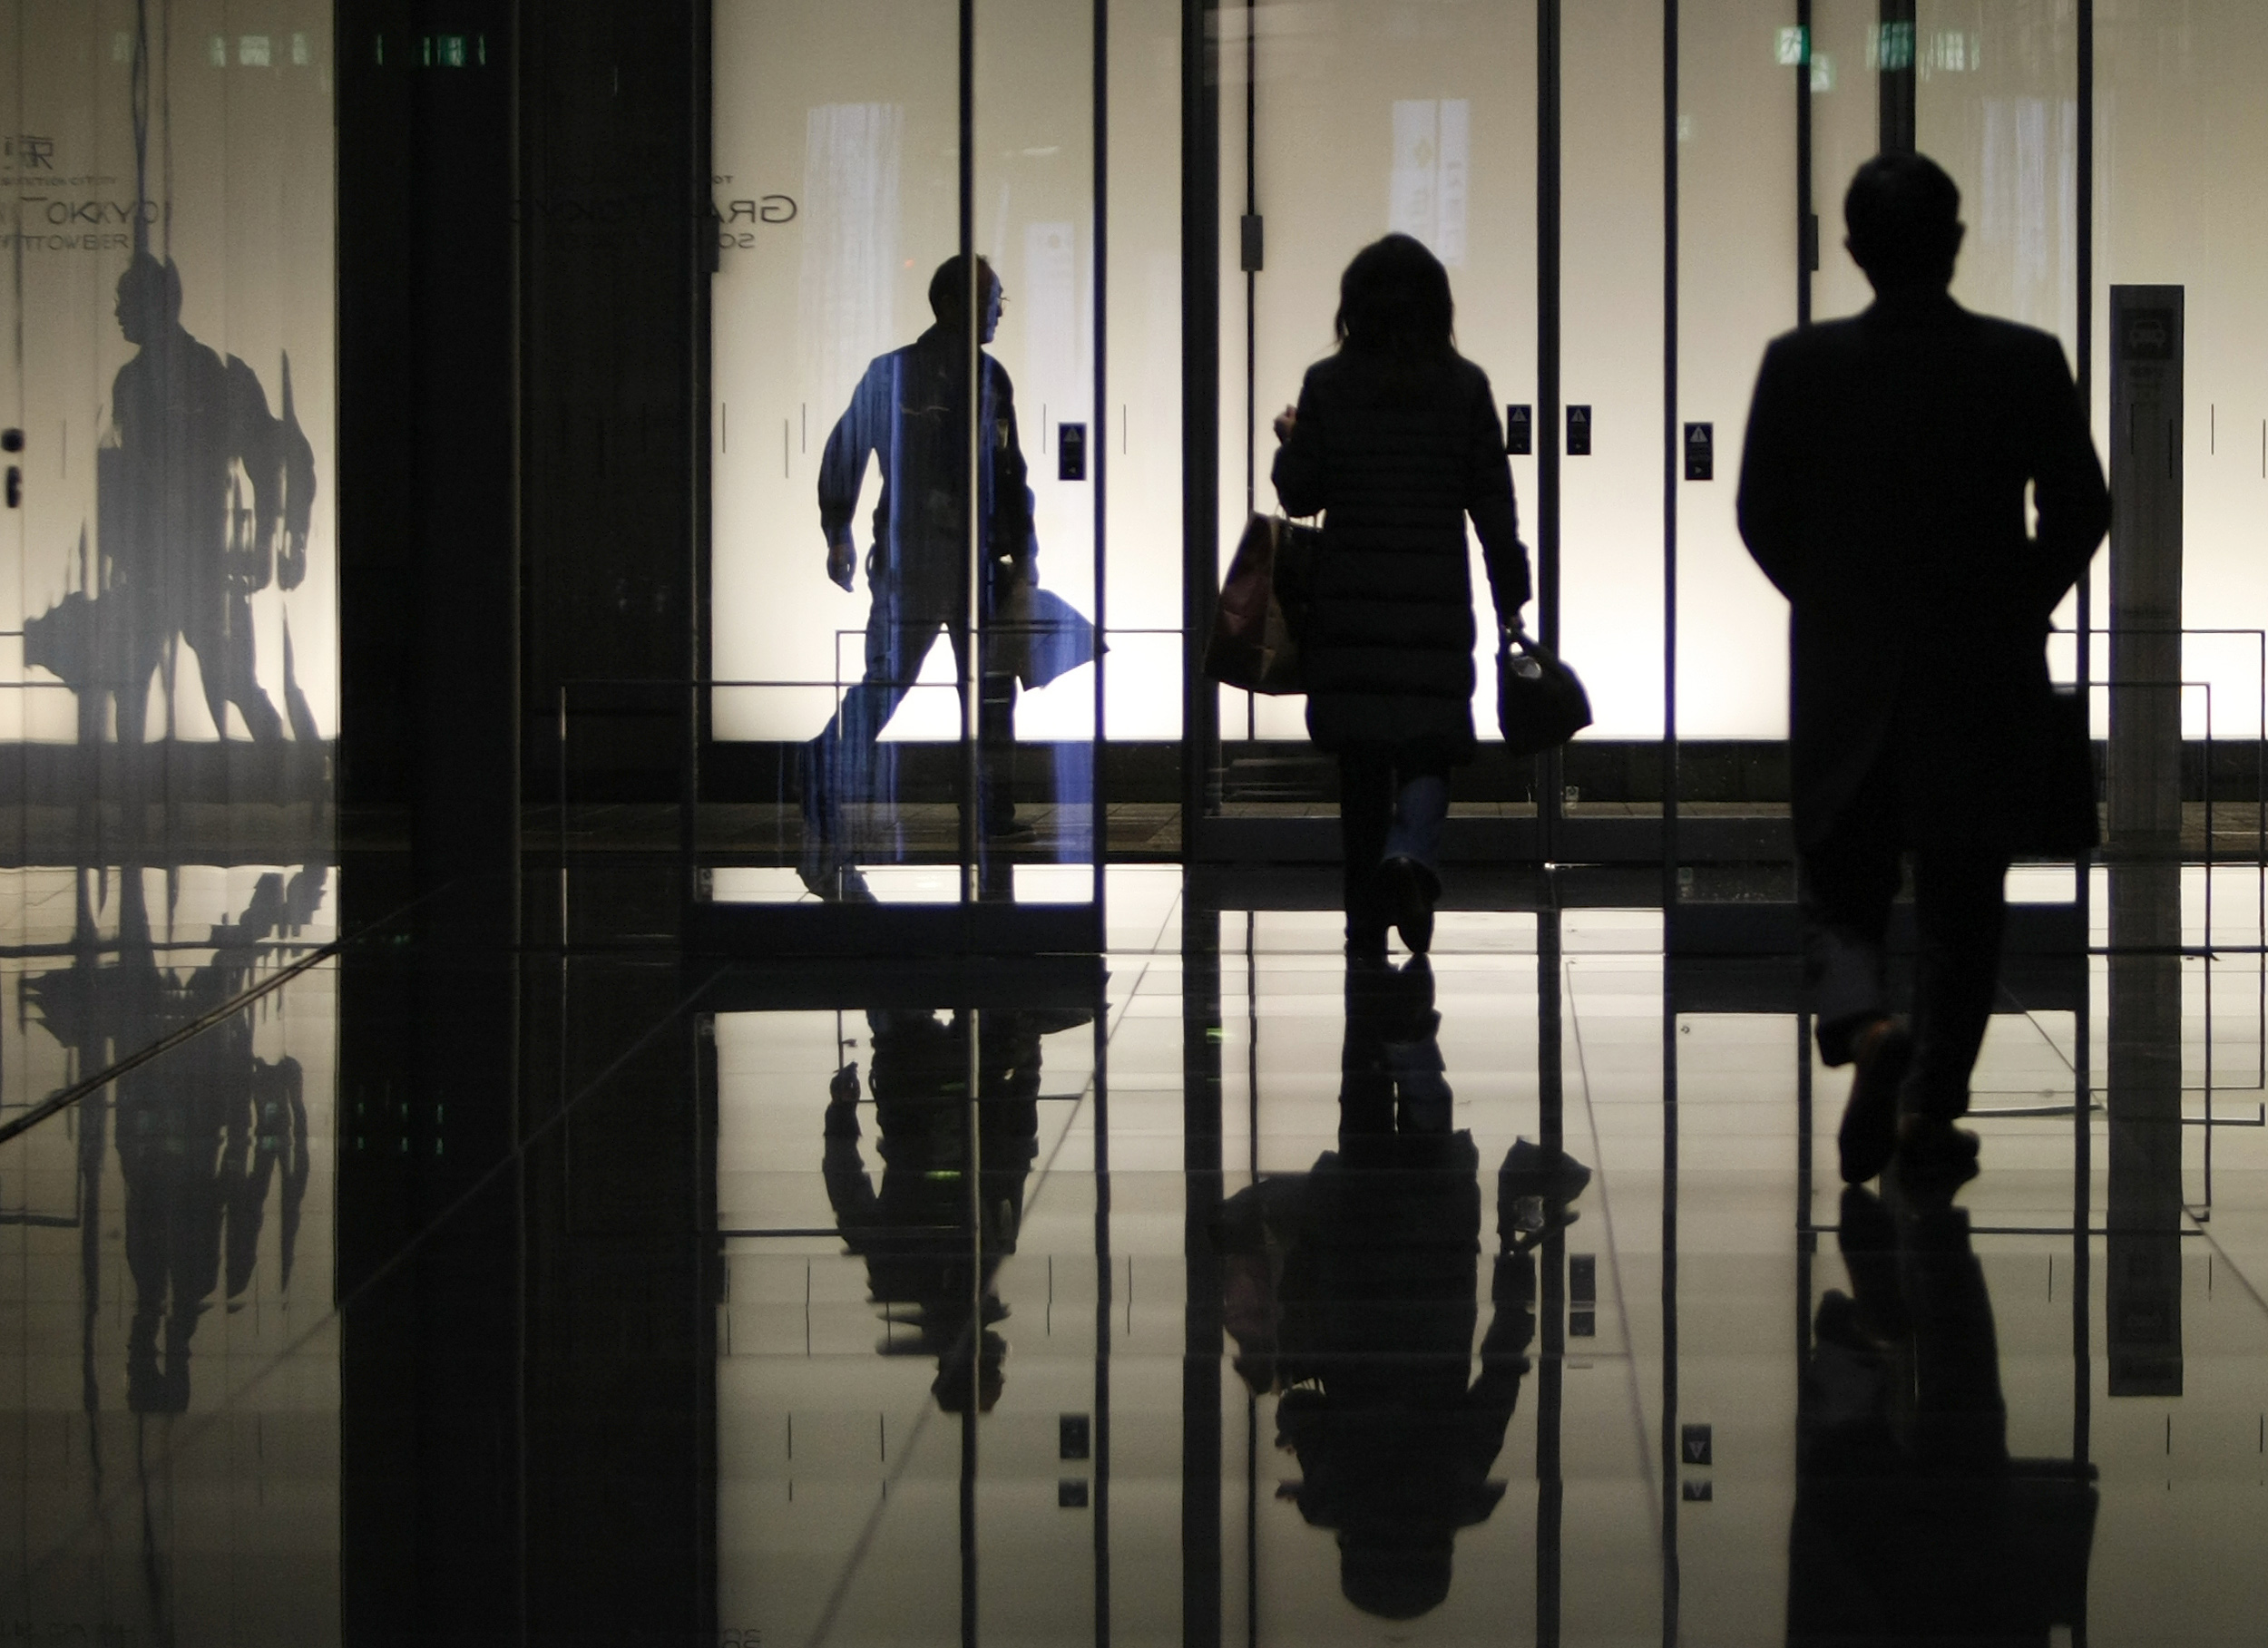 Pedestrians walk through an office building in Tokyo January 8, 2009. Deepening economic problems are forcing the government to prioritise spending to support the economy rather than steps to restore its tattered finances. REUTERS/Yuriko Nakao(JAPAN) - GM1E5181FTI01